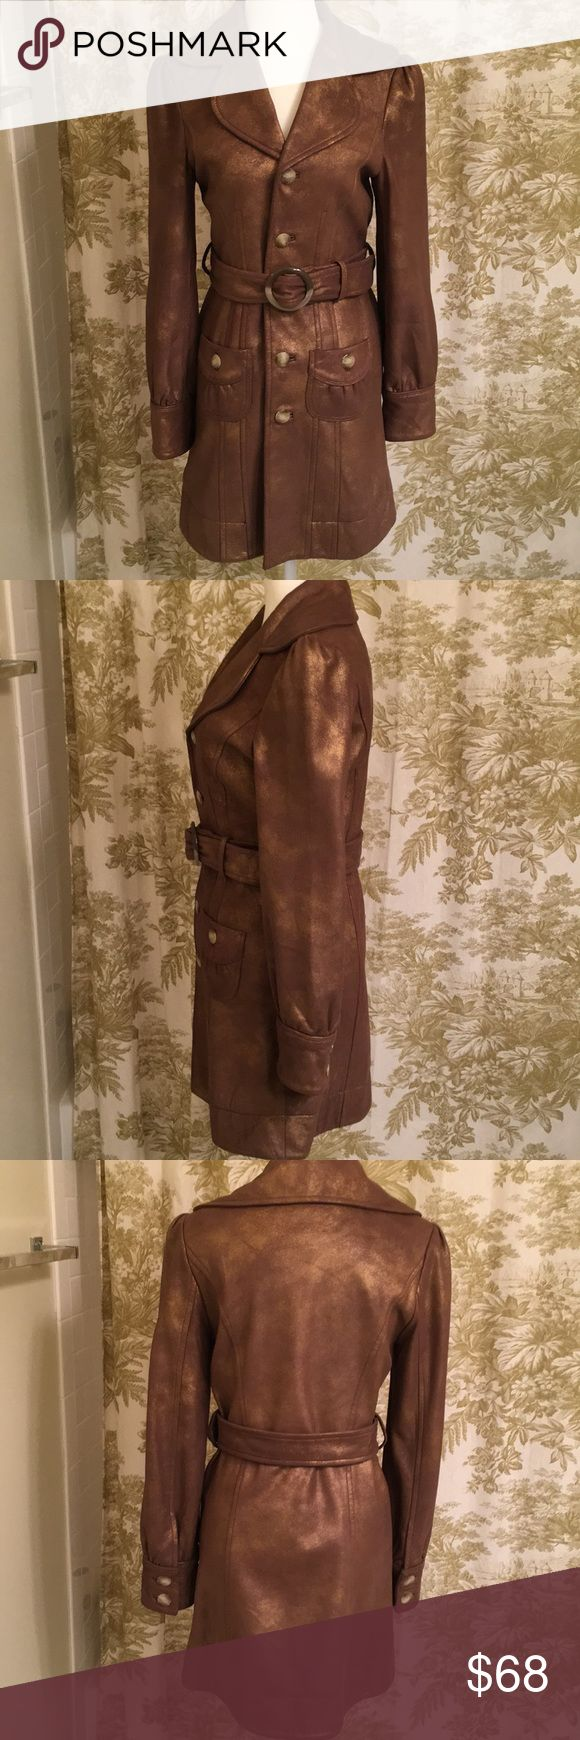 Leather trench size small Great condition and simply gorgeous!  Size small brown-gold leather trench by Christopher Blue for Neiman Marcus.  All leather outer. Fully lined. No stains or scratches. No trades. Neiman Marcus Jackets & Coats Trench Coats